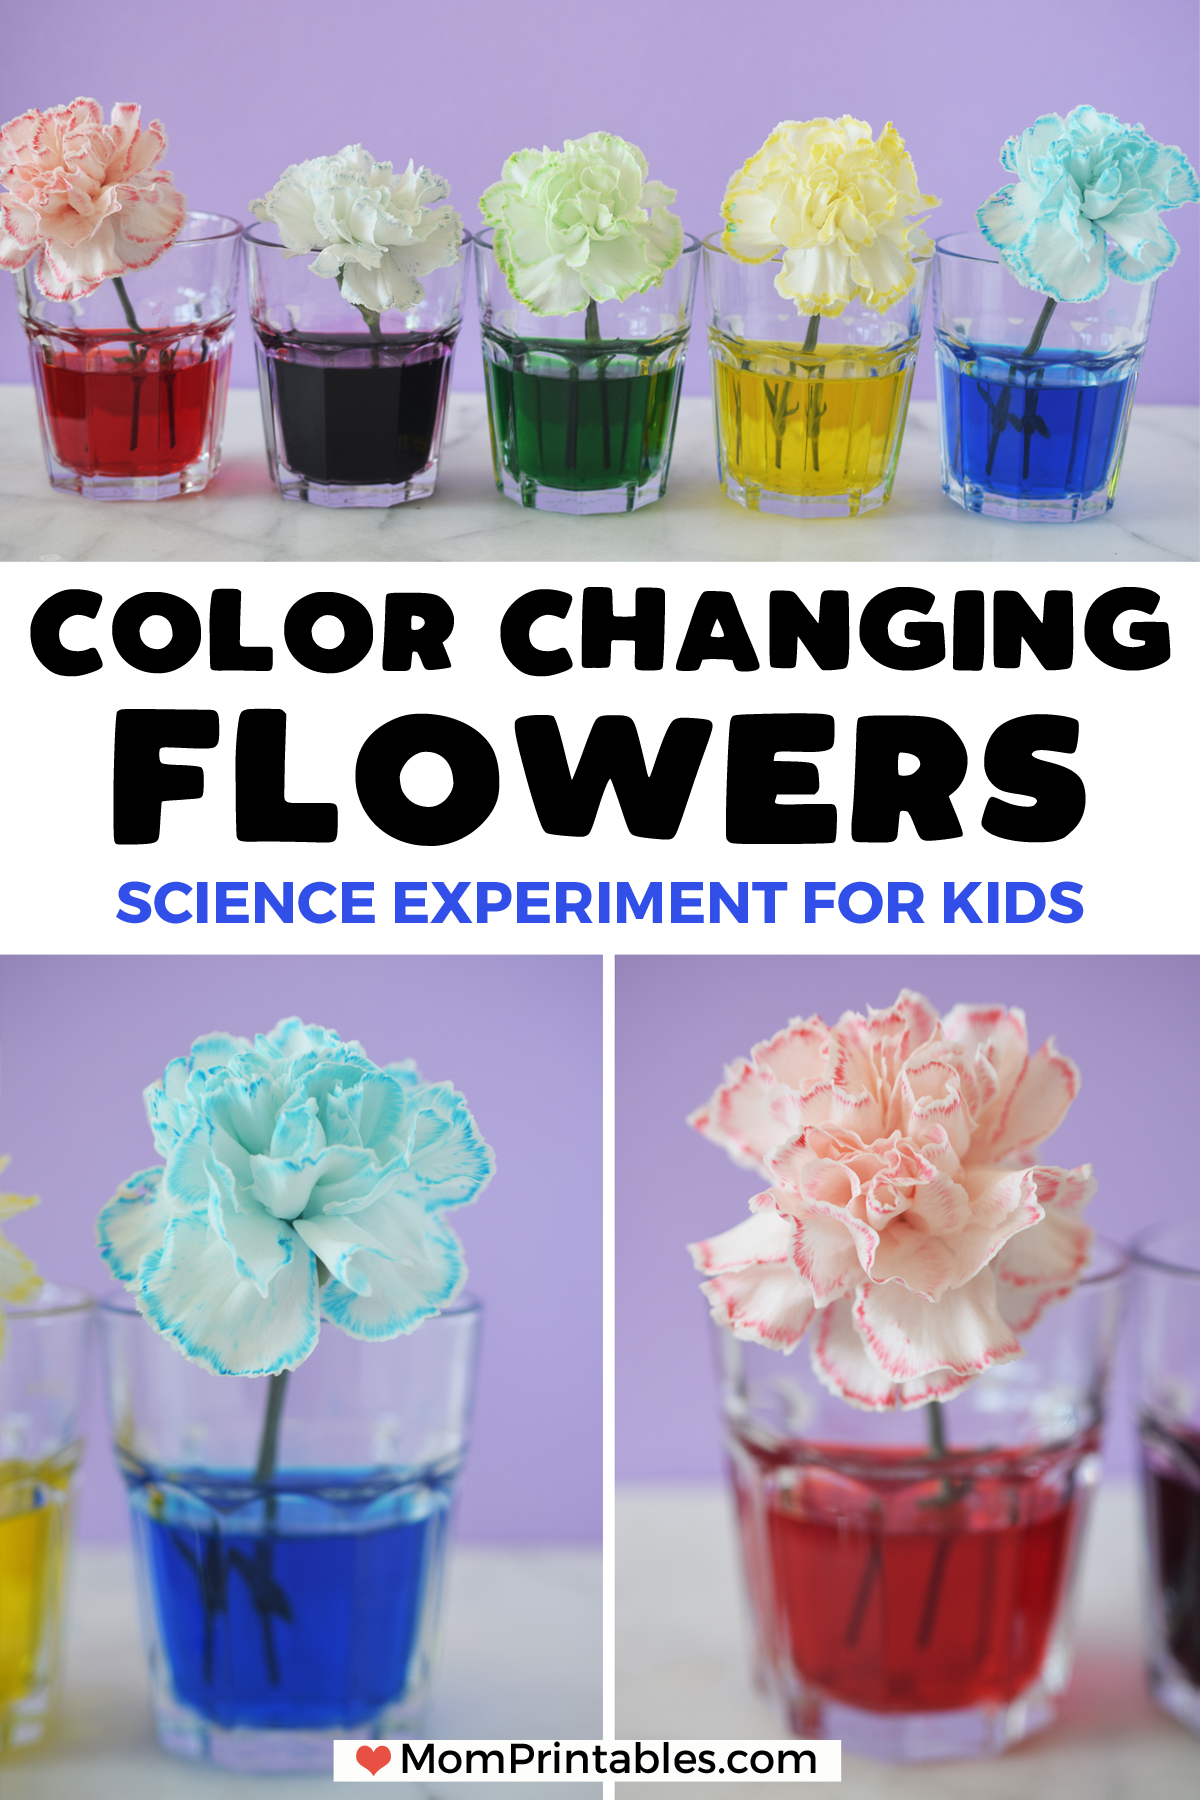 color changing flowers science experiment for kids | science project | experiment | for kids | beautiful | white carnations | colour | centre pieces | spring | nature | plants | science | kids craft | kids activity | science at home | stems | STEAM #kidsscience #kidscraft #kidsactivity #science #scienceexperiment